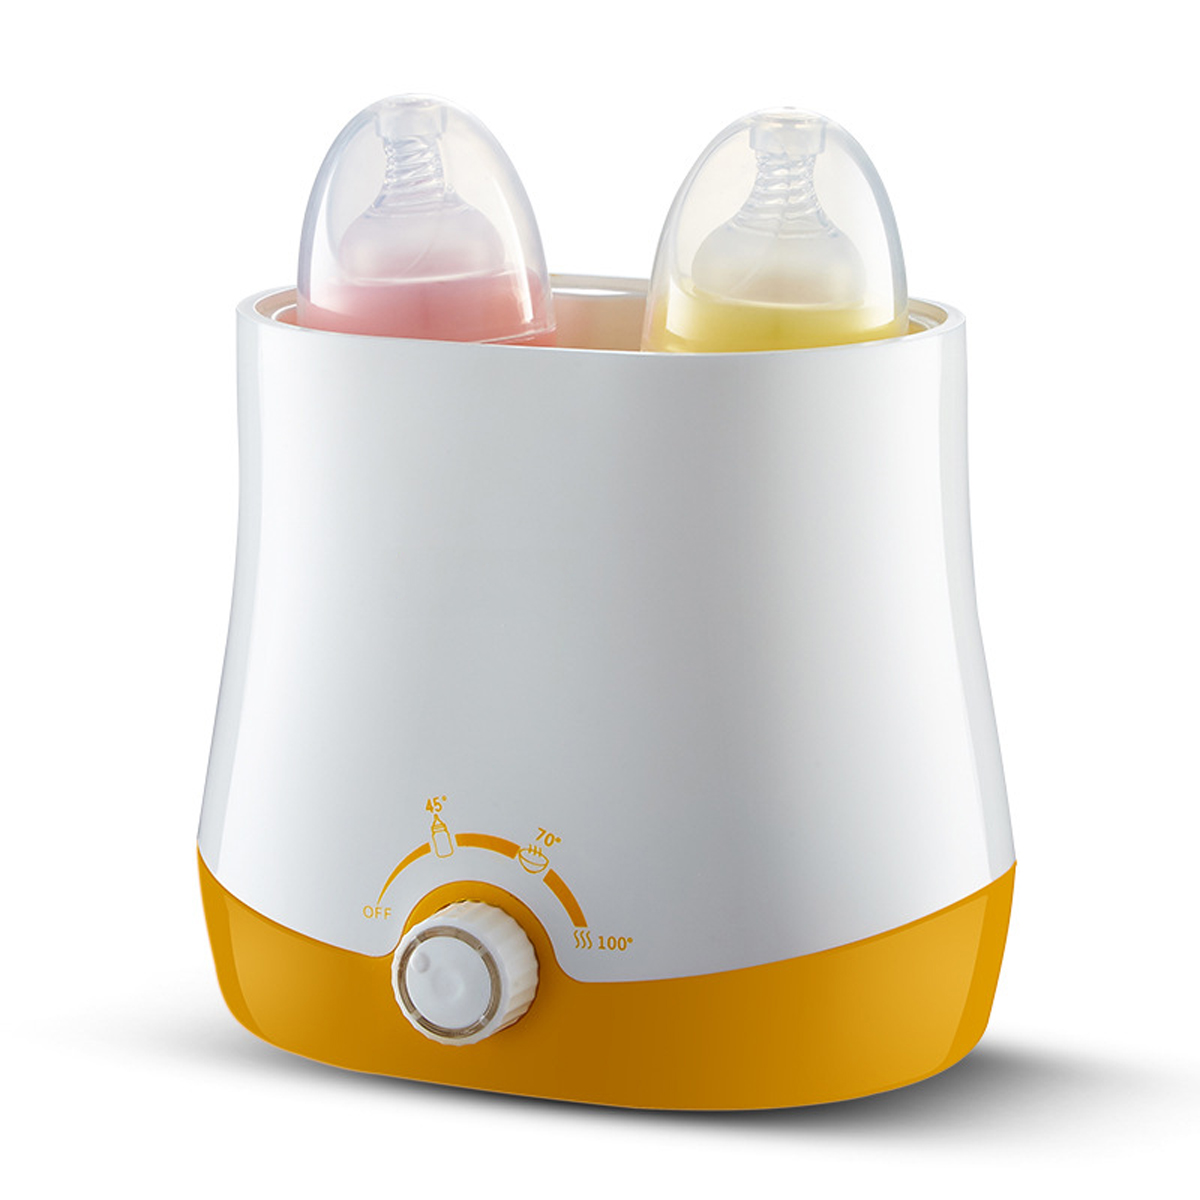 Baby Bottle Disinfection Fast Warm Milk & Sterilizers Multi-function Automatic Intelligent Thermostat Baby Bottle Warmers